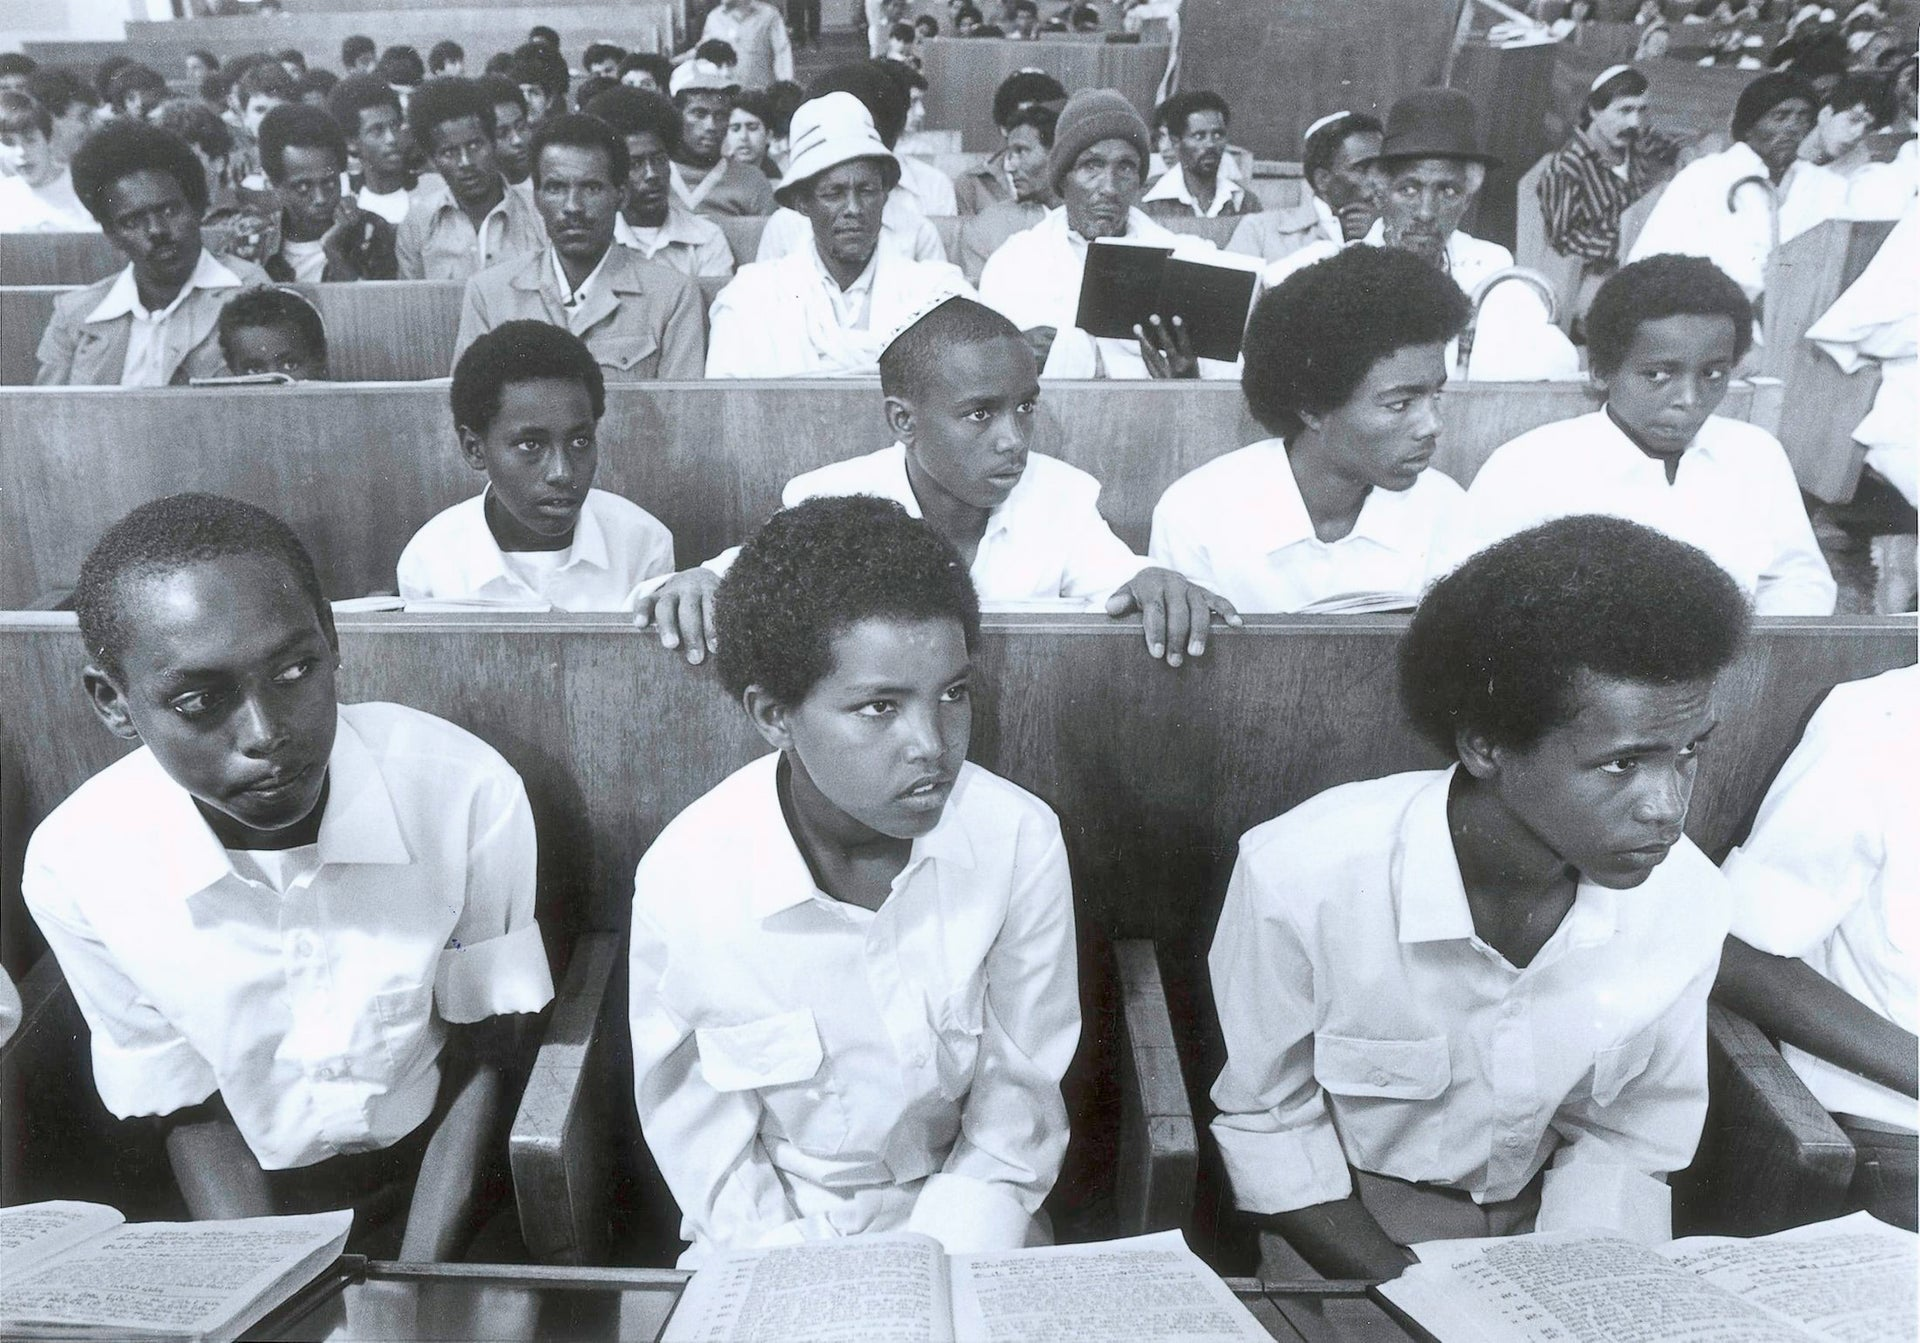 A group of Ethiopian Jews at a ceremony at Yemin Orde Youth Village in 1984. Several thousand members of Beta Israel were smuggled into Israel during Operation Brothers between 1981 and 1984.